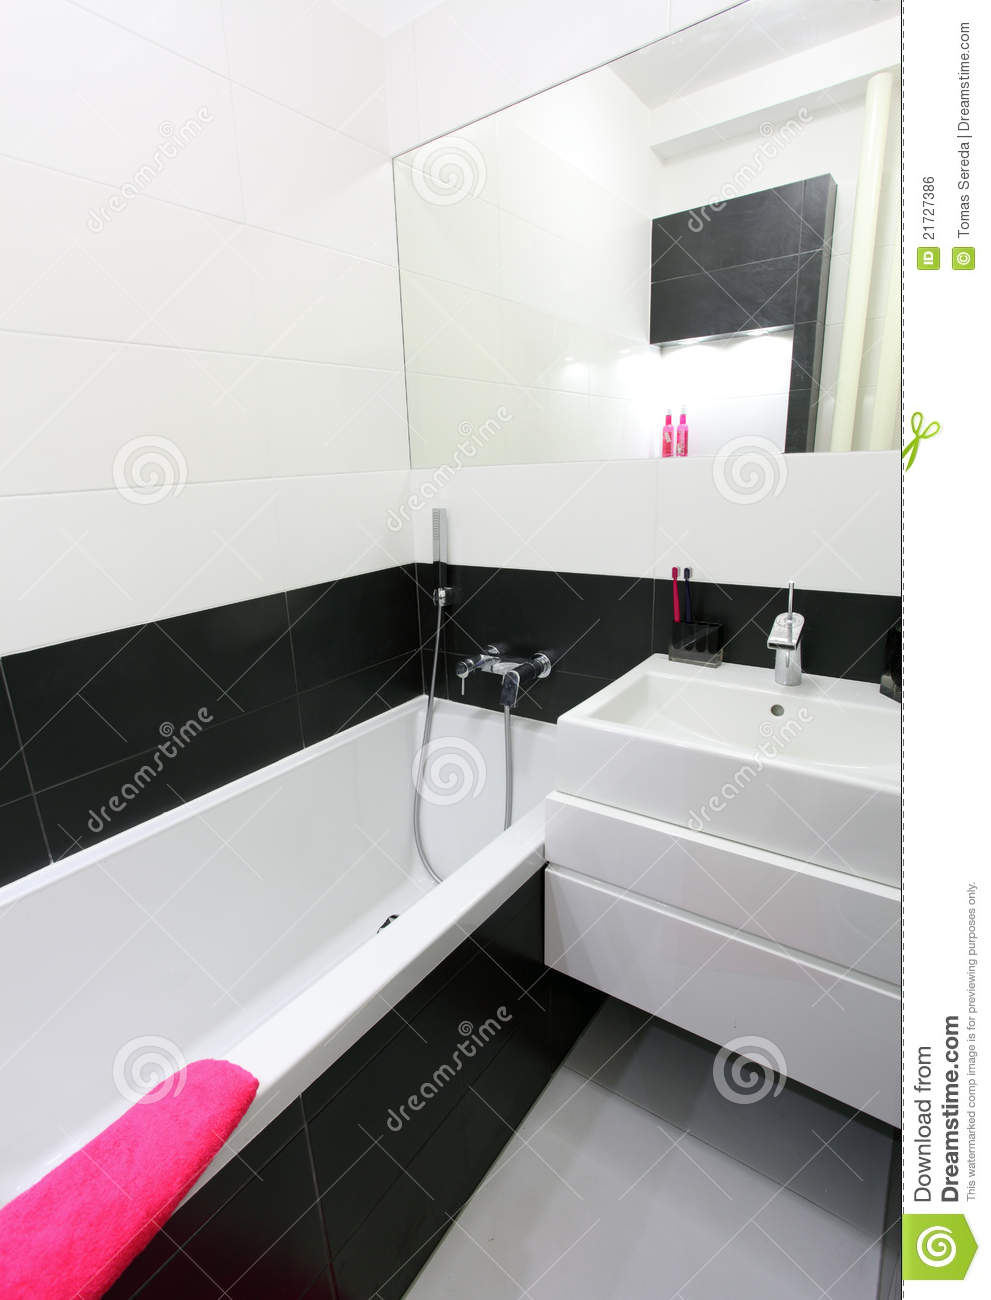 petite salle de bains moderne photo stock image du bain meubles 21727386. Black Bedroom Furniture Sets. Home Design Ideas